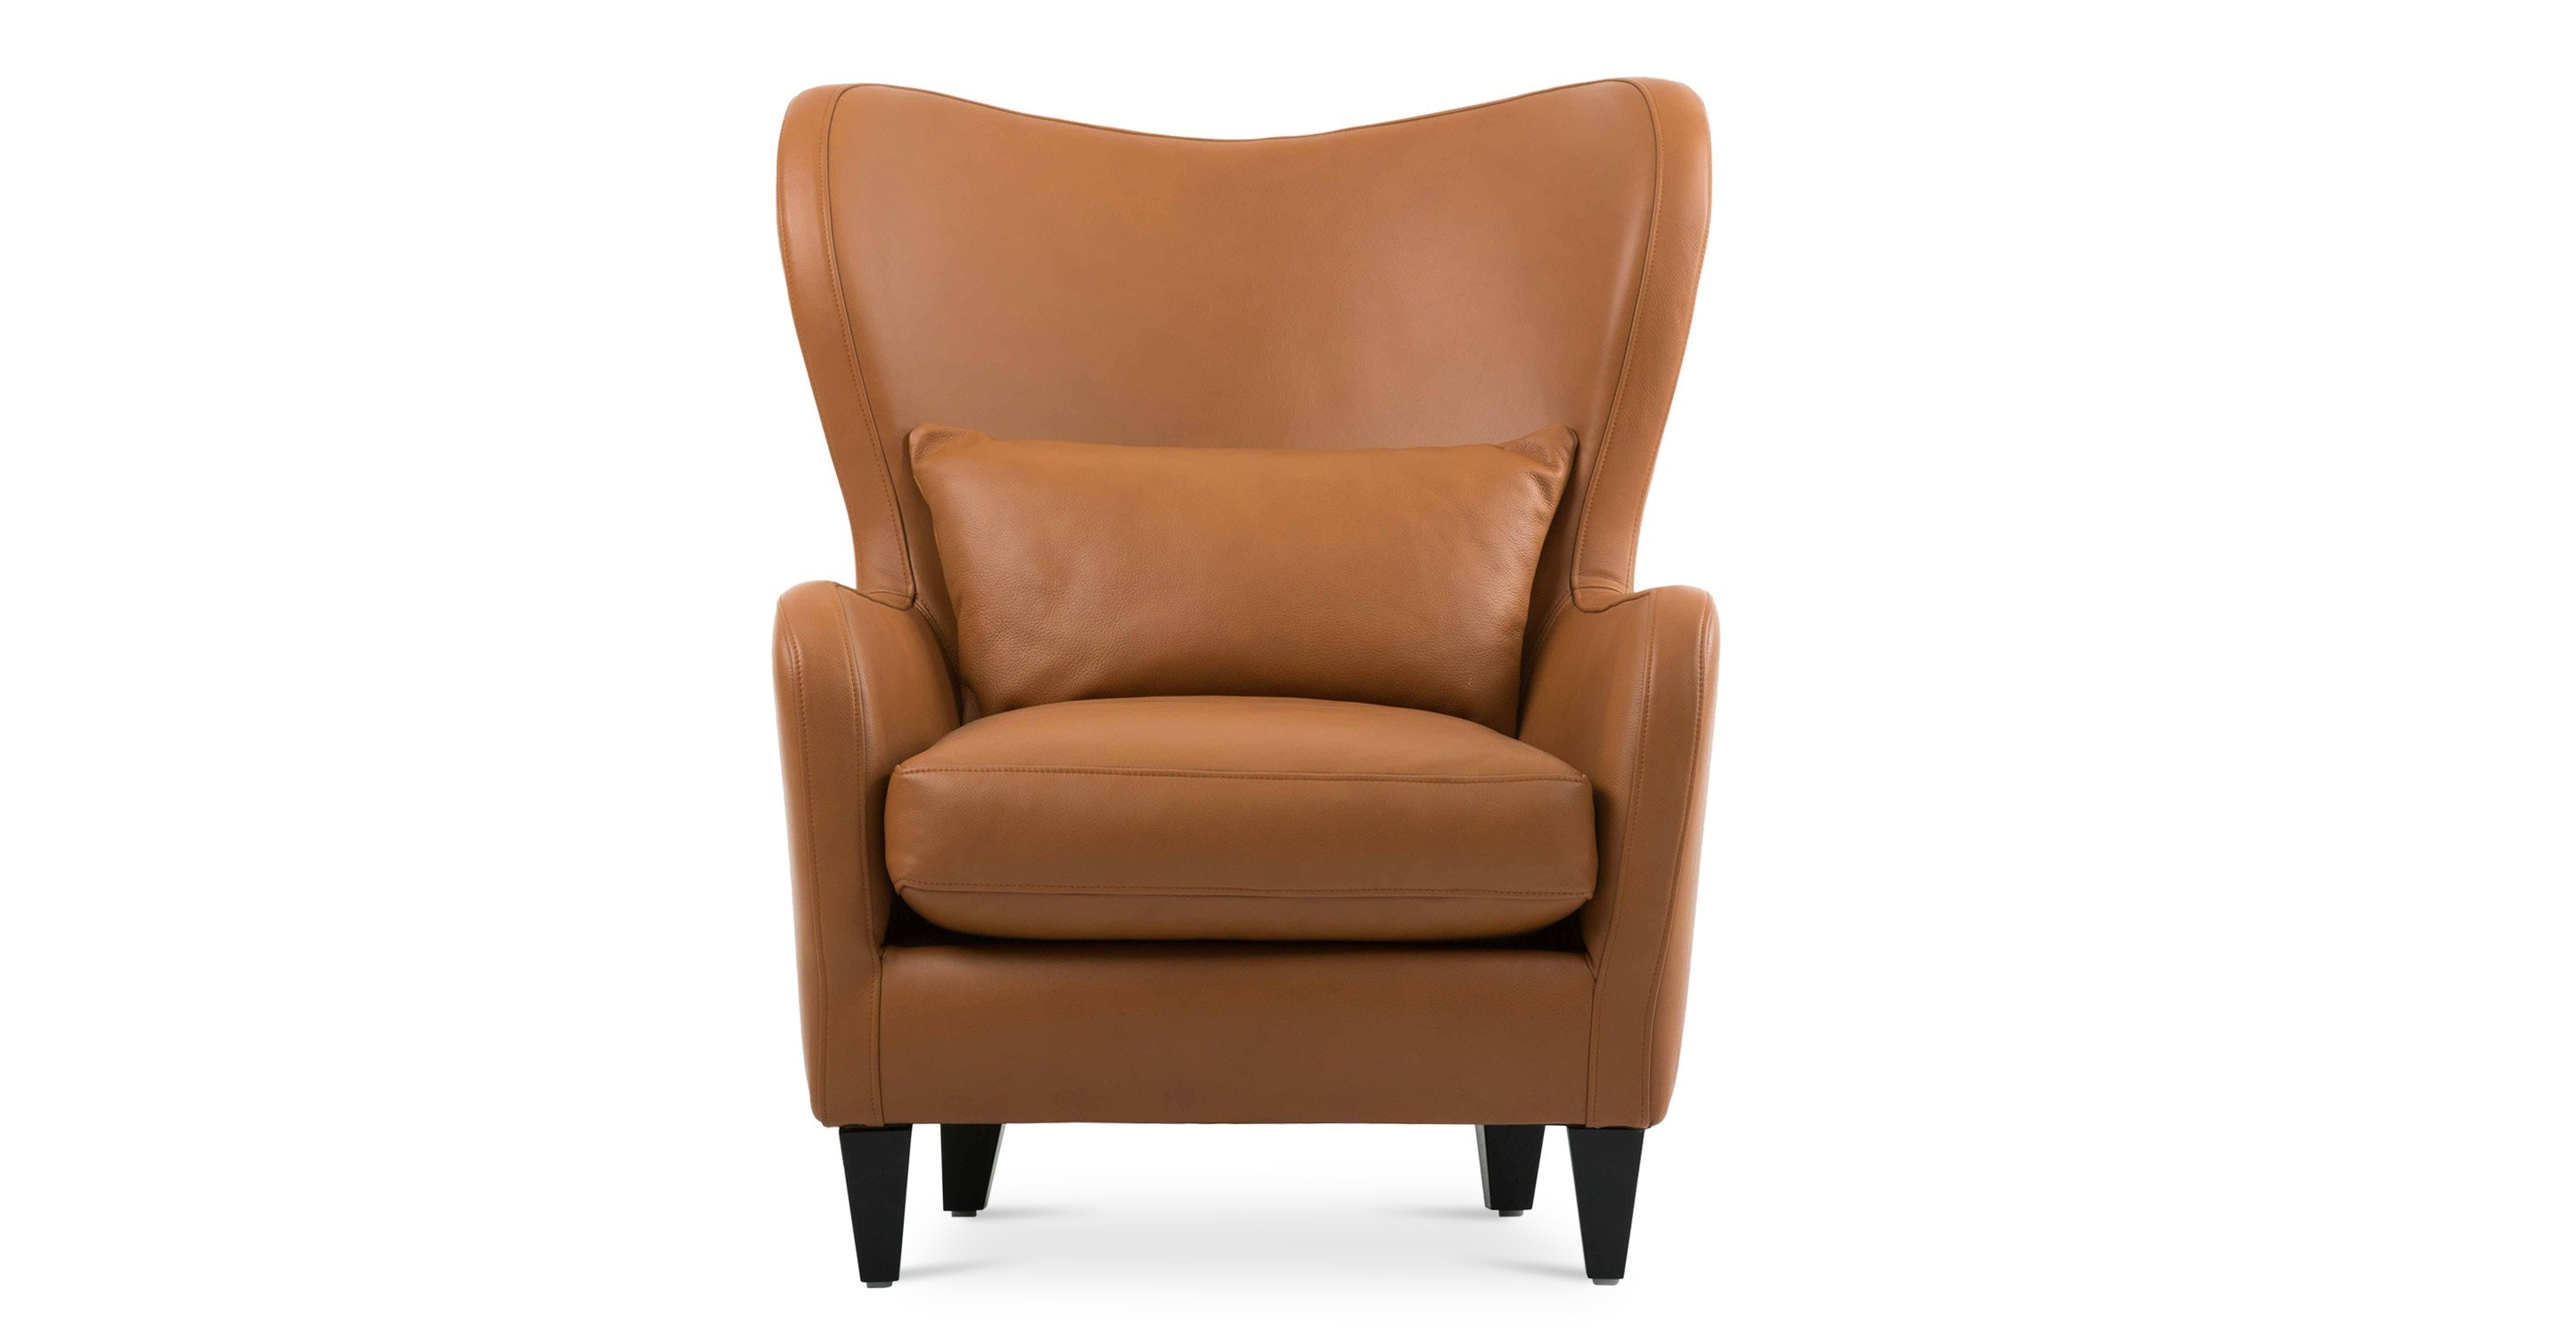 Polo Cognac Tan Leather Armchair Lounge Chairs Article